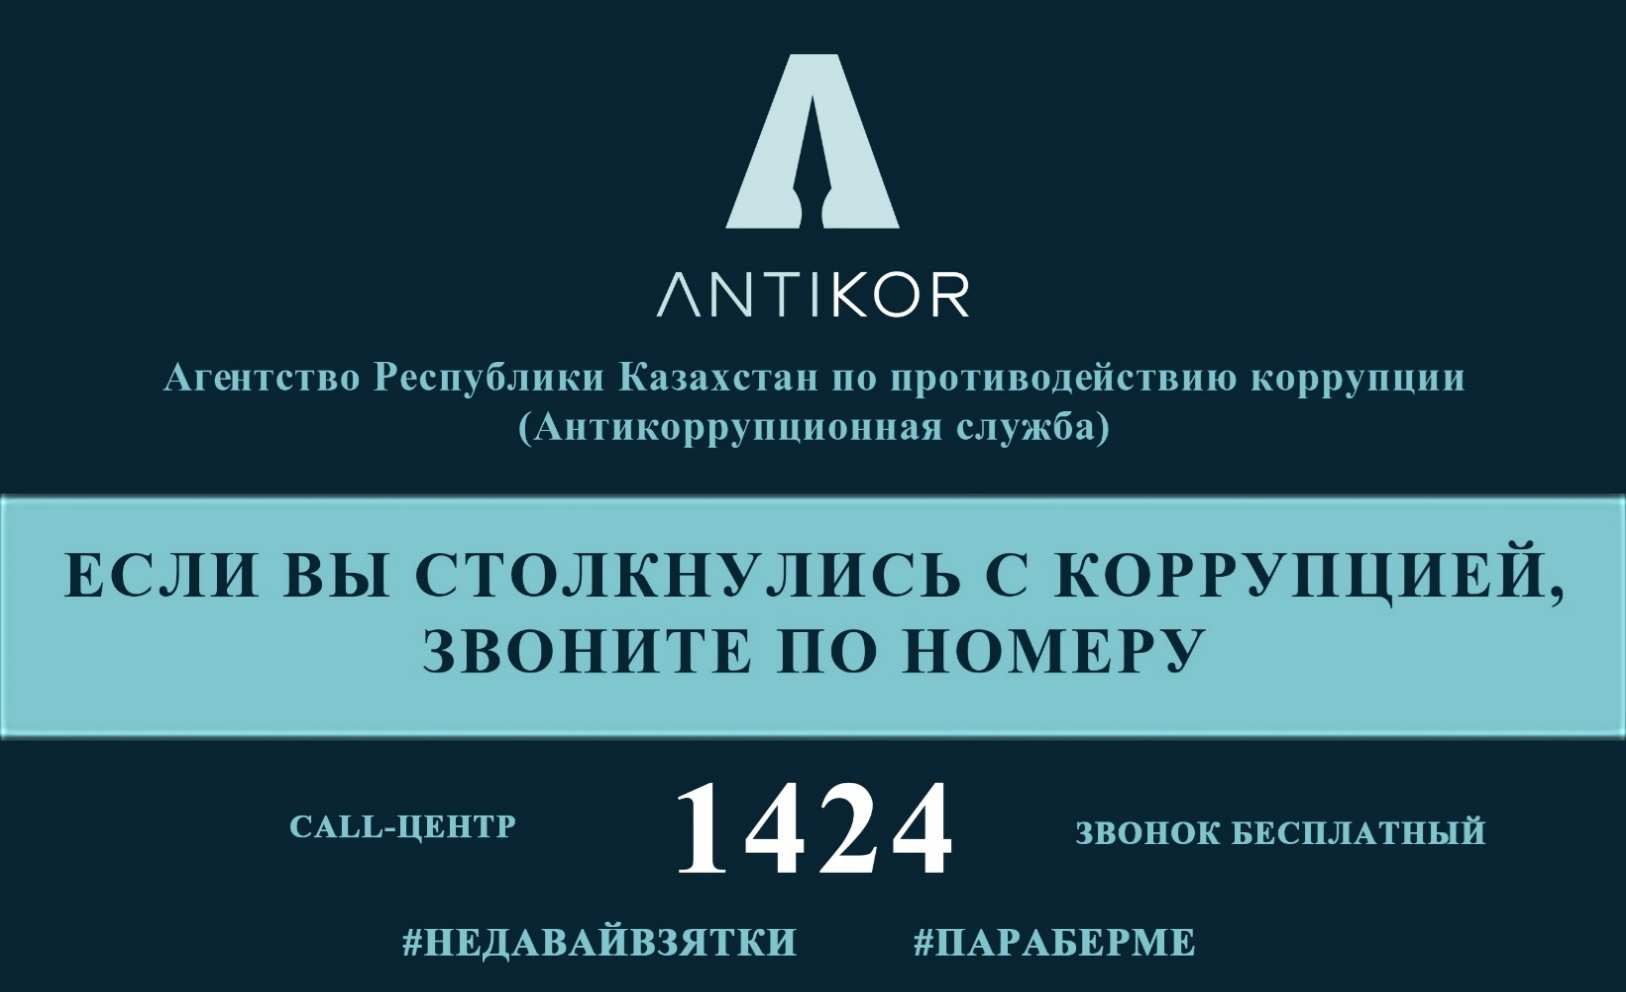 Call Center 1424 of the Agency of the Republic of Kazakhstan for Combating Corruption (Anti-Corruption Service)